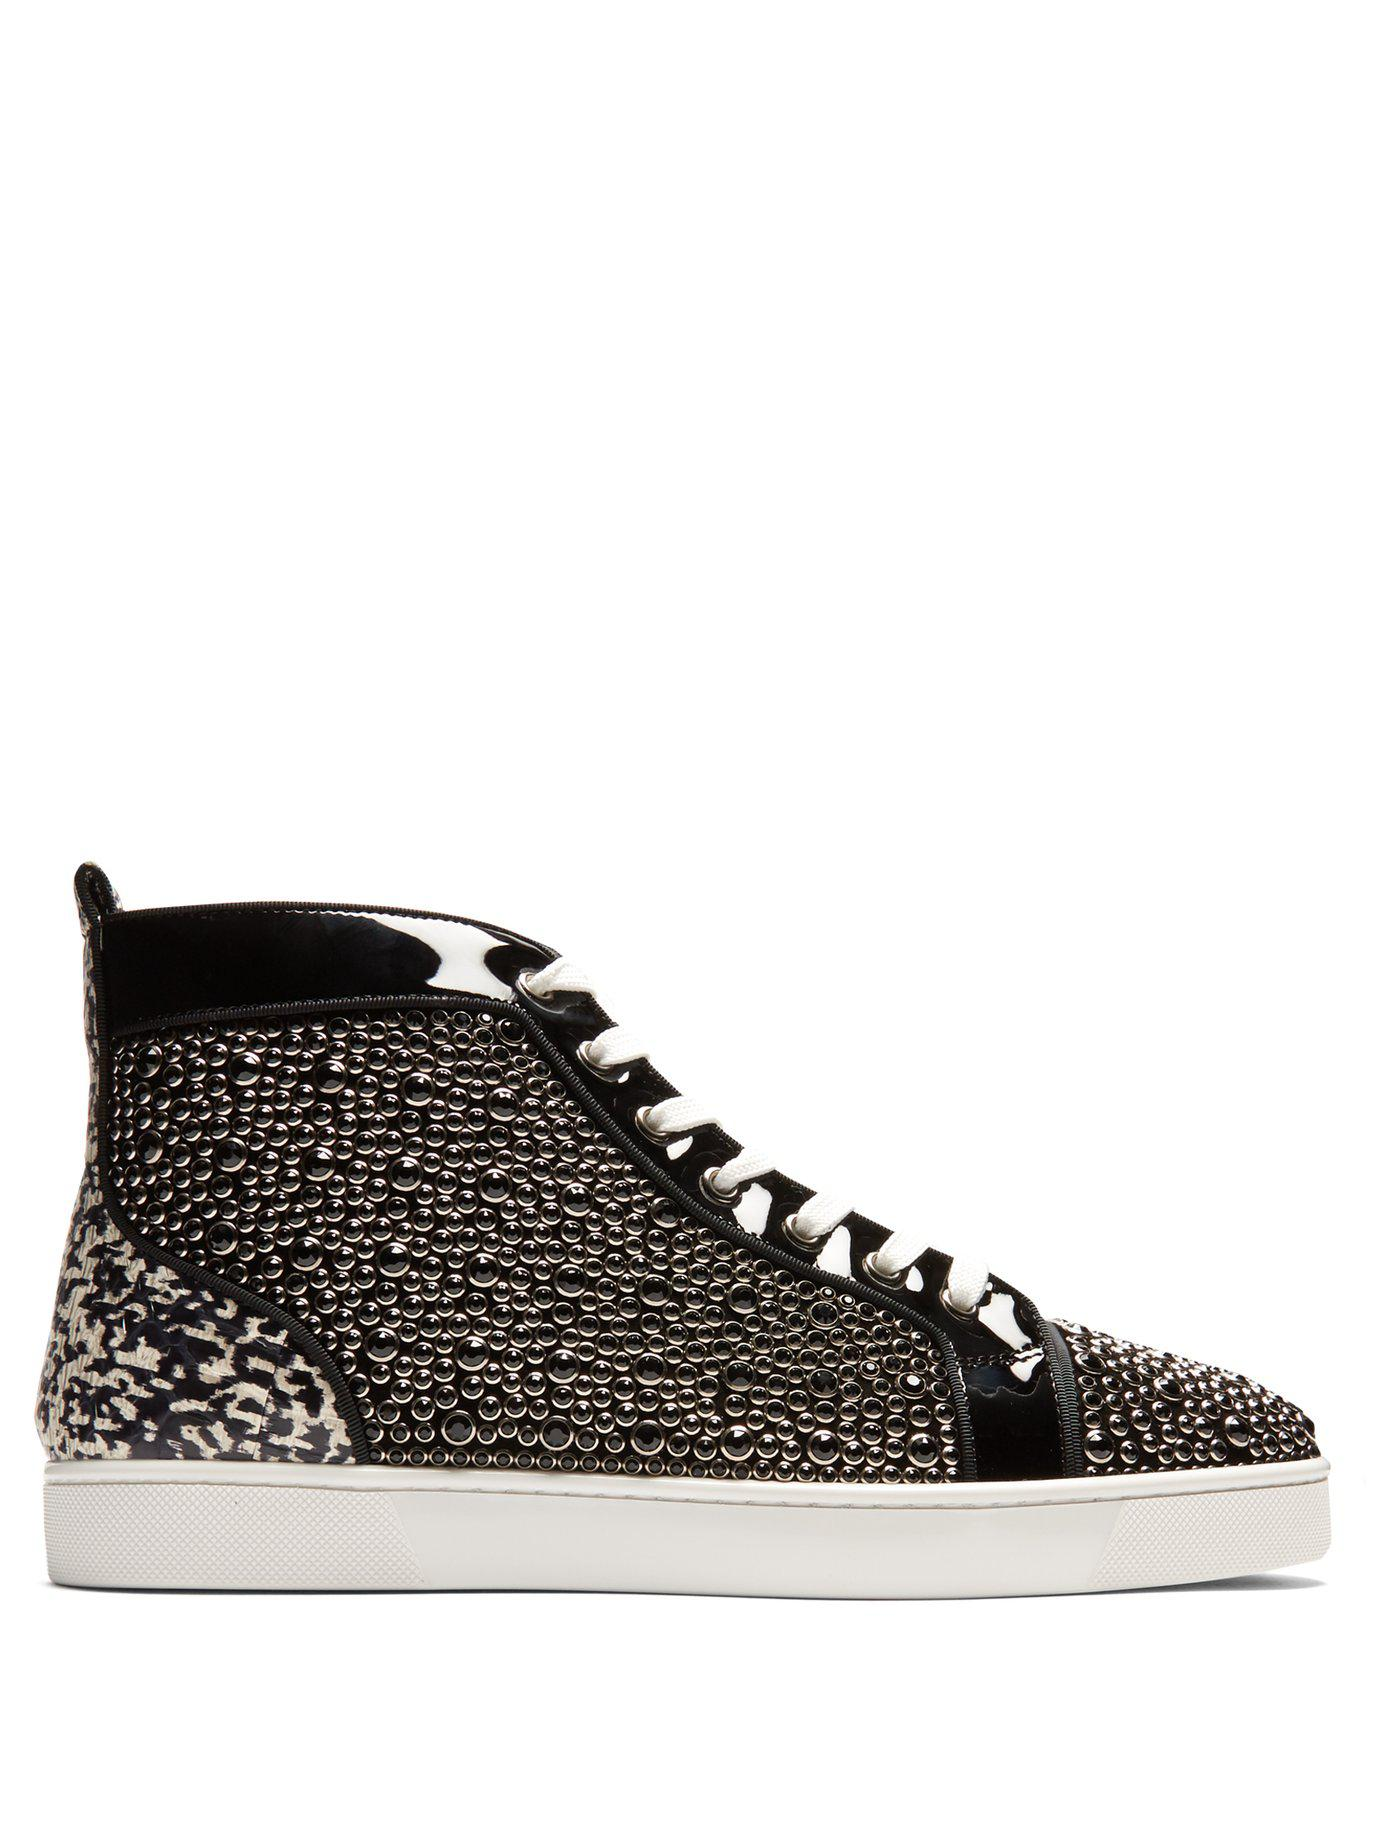 d3a666c22619 Lyst - Christian Louboutin Louis Orlato High Top Patent Leather ...